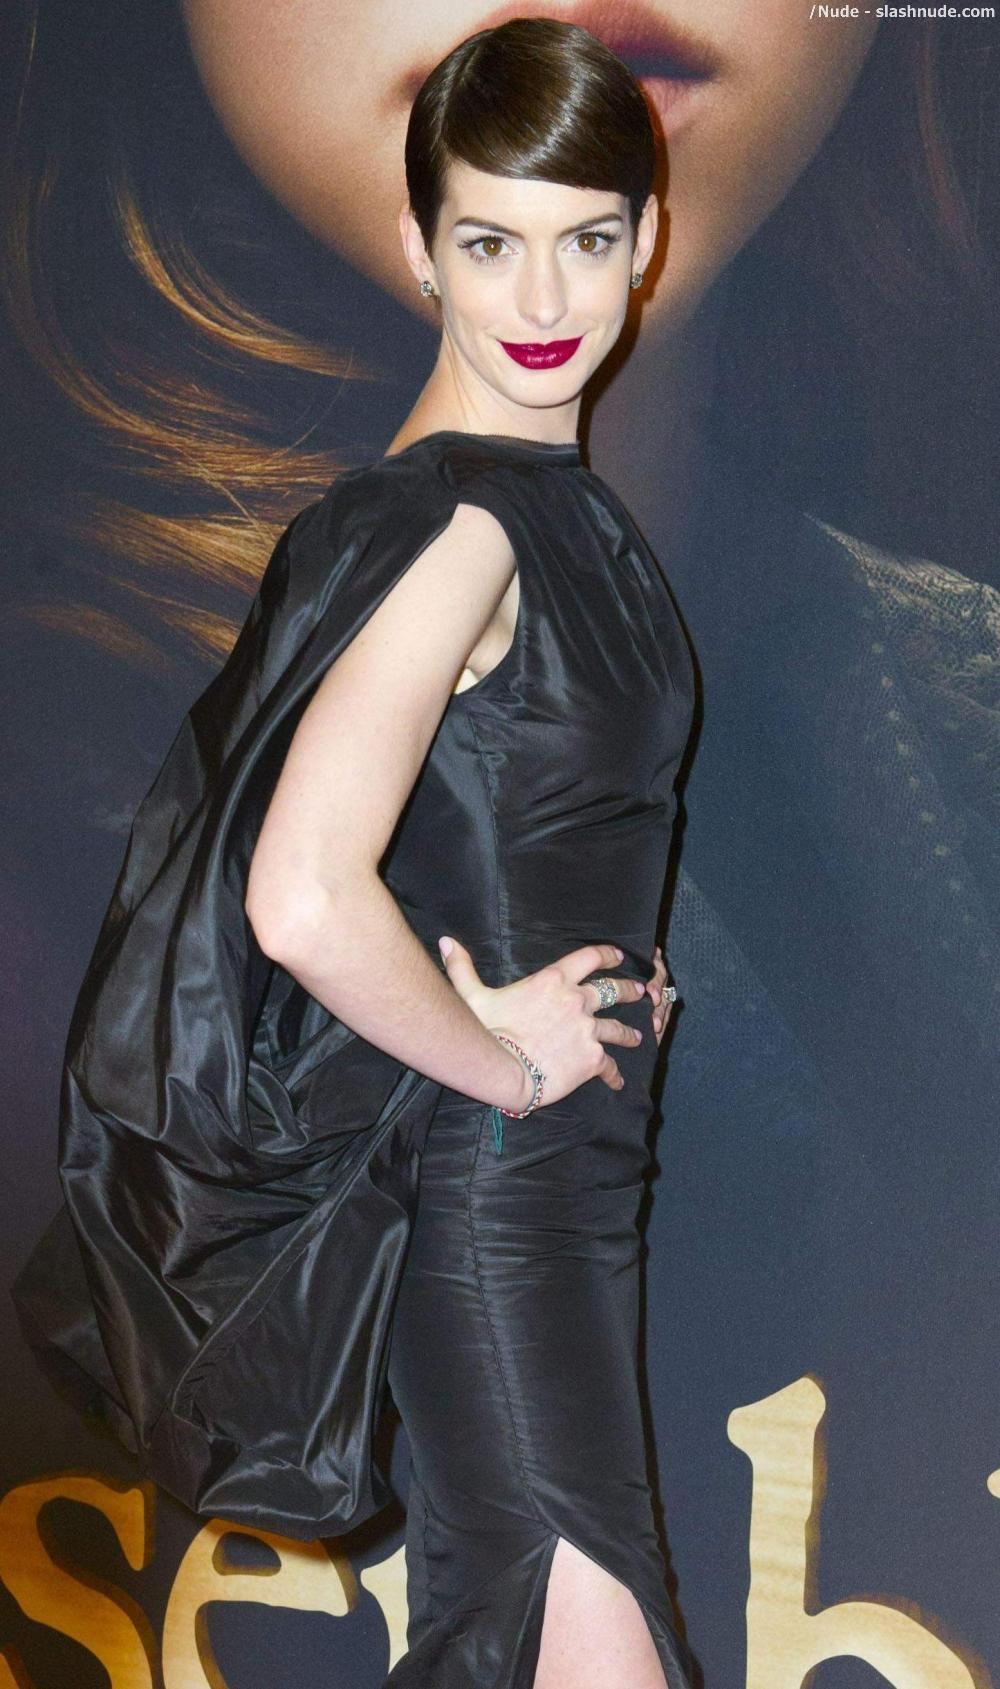 Anne hathaway pussy